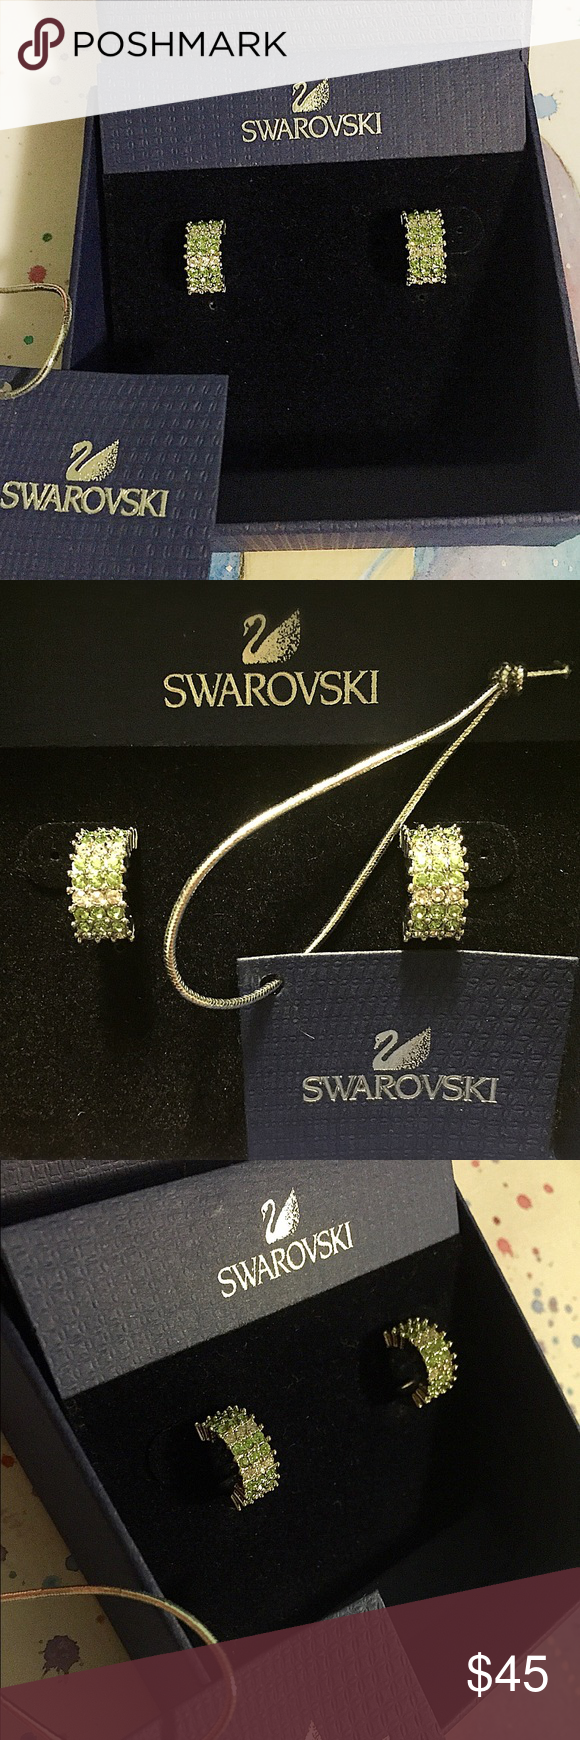 "Auth. Swarovski Earrings! Gorgeous Authentic Swarovski Stud Earrings! Sterling Silver. Only worn once for a wedding, in perfect ""like new"" condition. Last picture shows the Swarovski Swan stamp, which is on the back of both earrings. Comes with original box. Swarovski Jewelry Earrings"